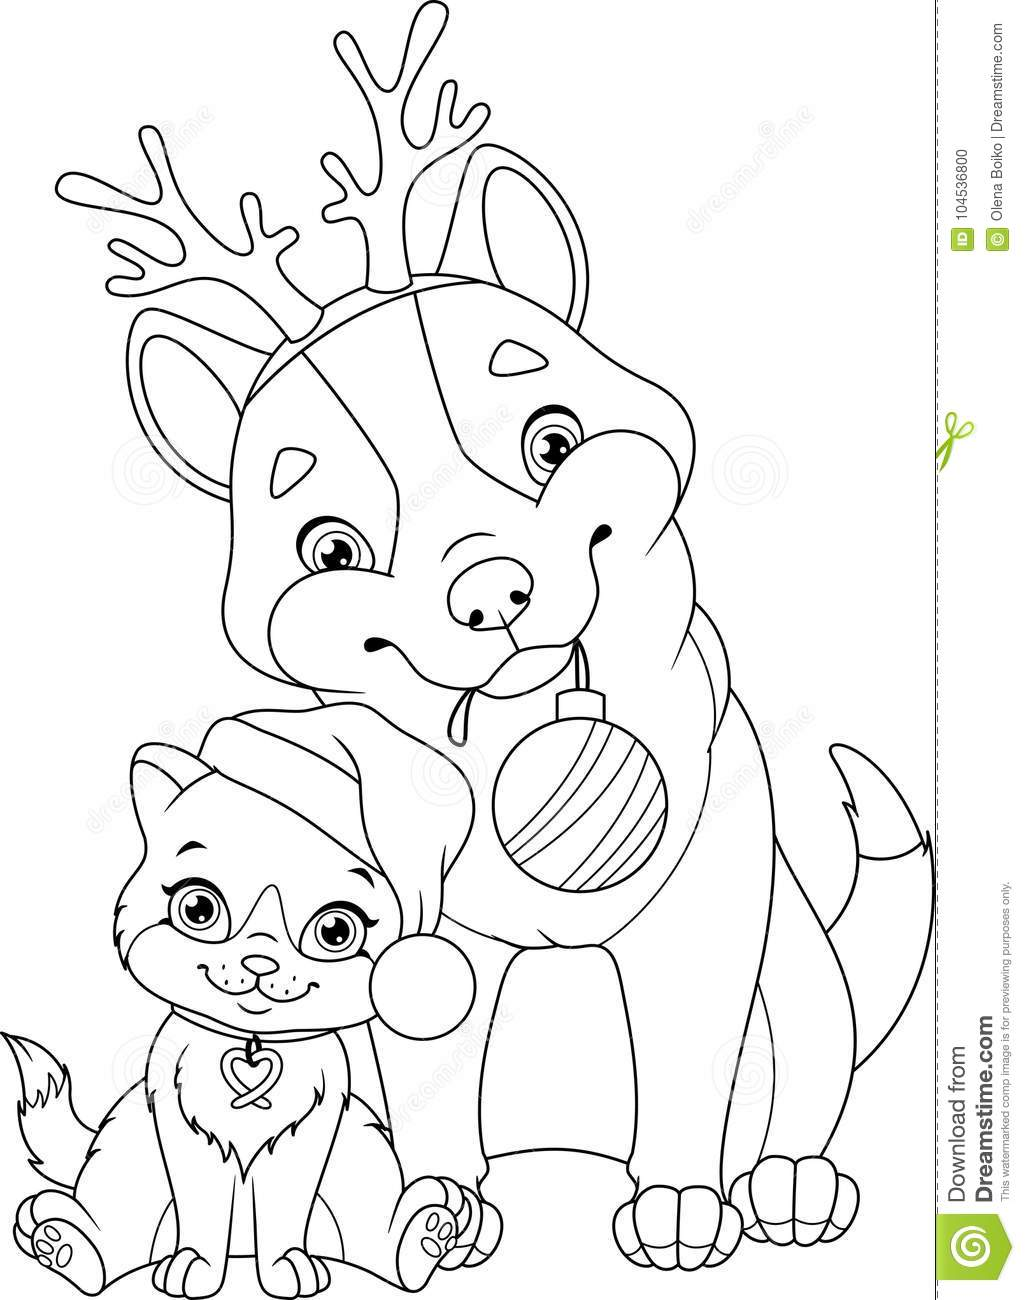 Christmas Coloring Pages With Cats Dog Cat Page Stock Vector Illustration Of